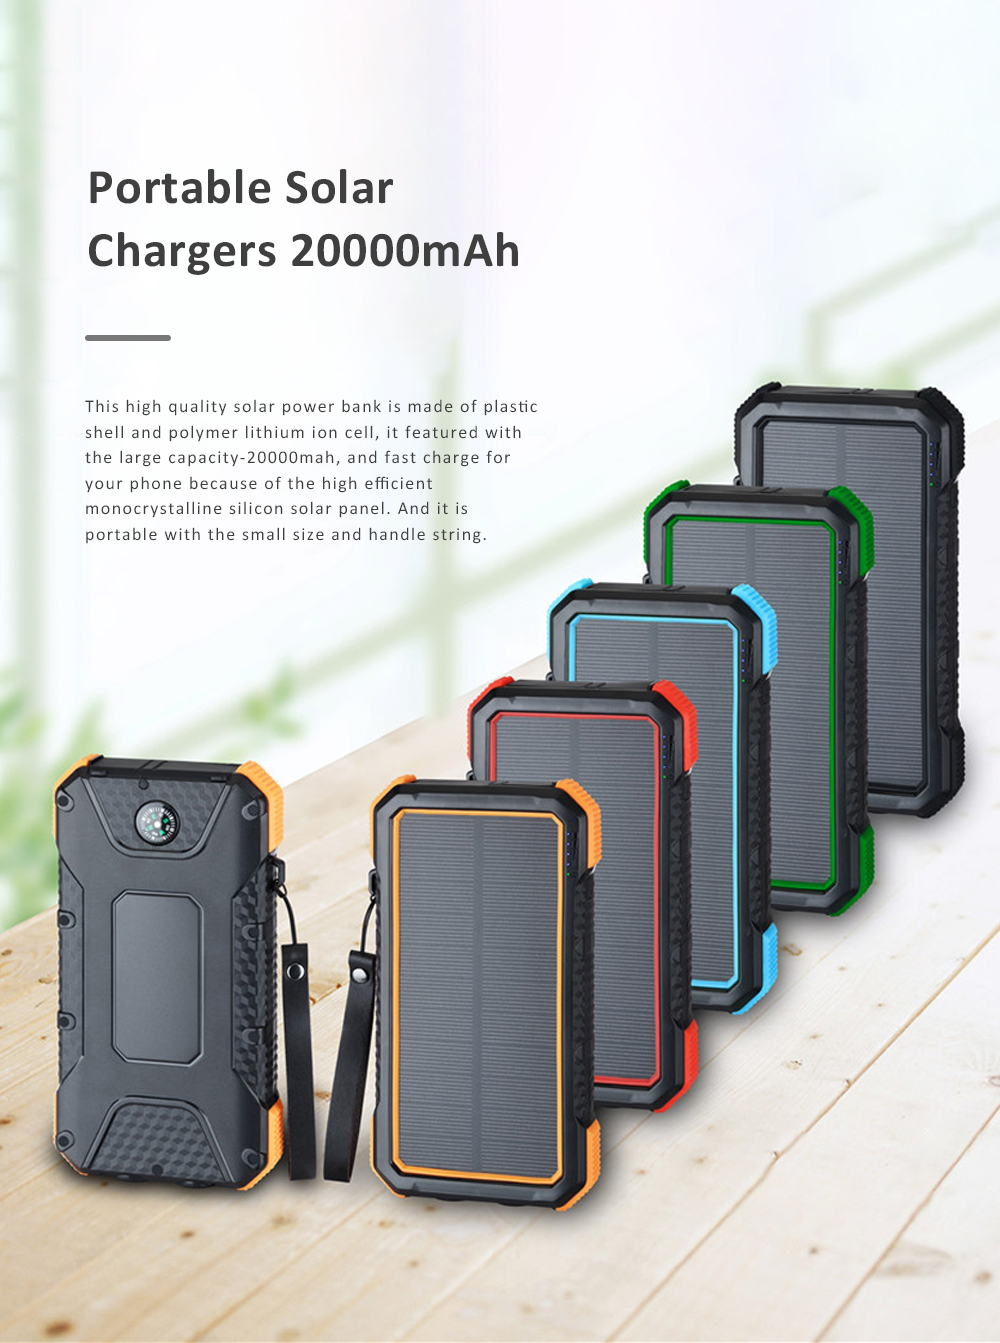 Solar Power Bank Chargers 20000mAh Portable Solar Power Bank Phone Charger with Two Type-C Port and Handle String 0